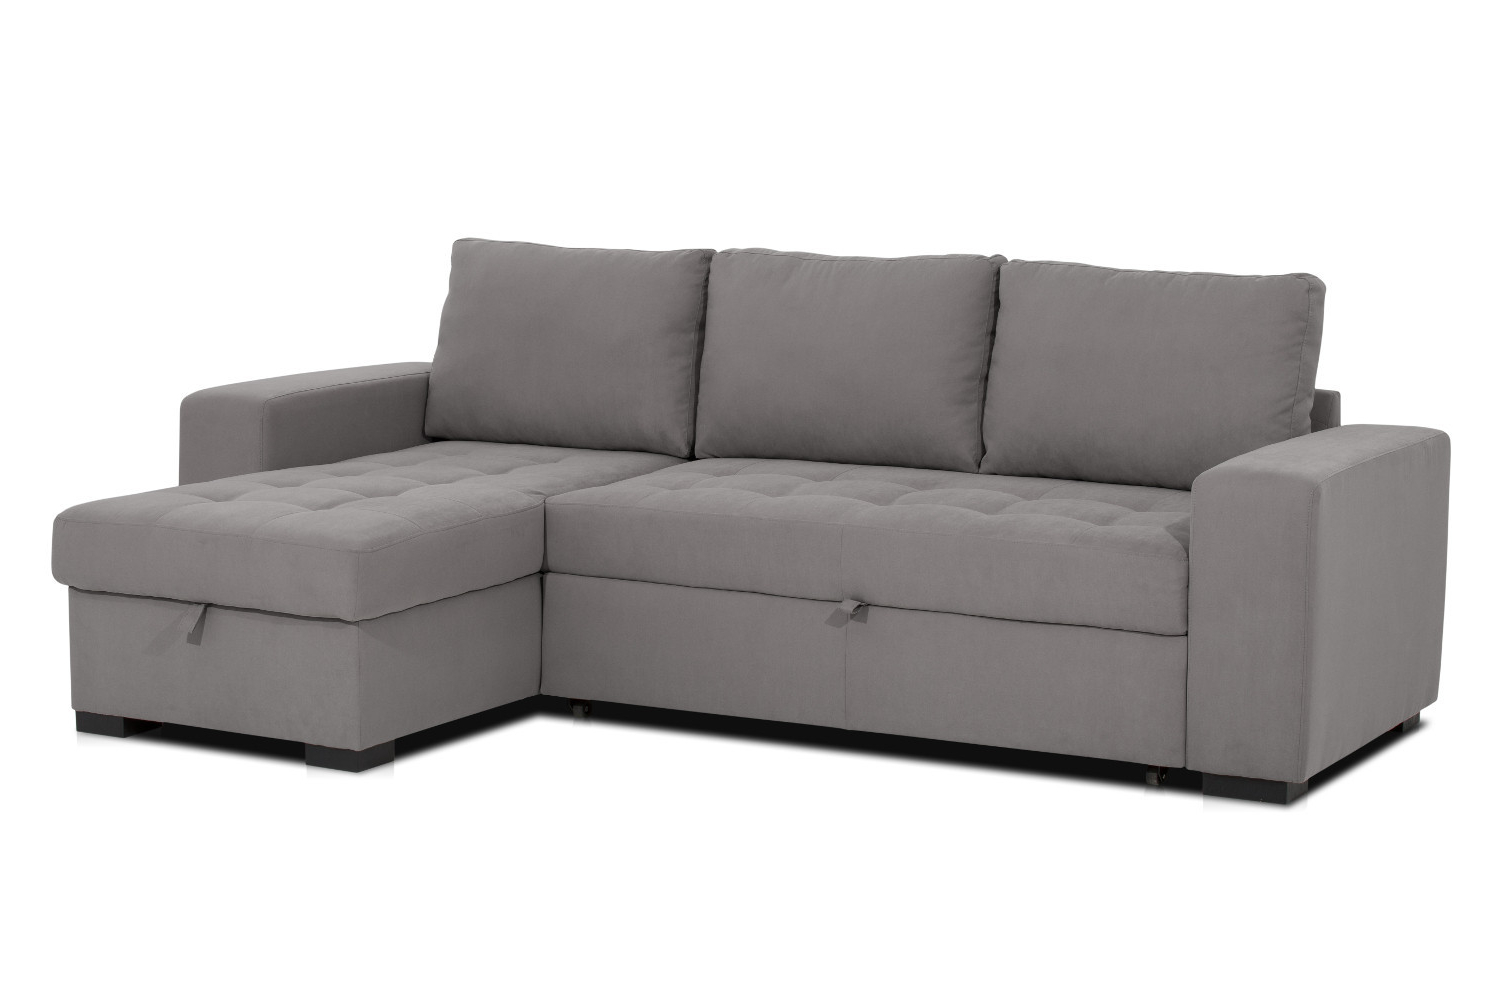 Conforama sofas Cheslong Zwd9 Chaise Longue Conforama sofa Gris Elegant sofa Chaise Longue